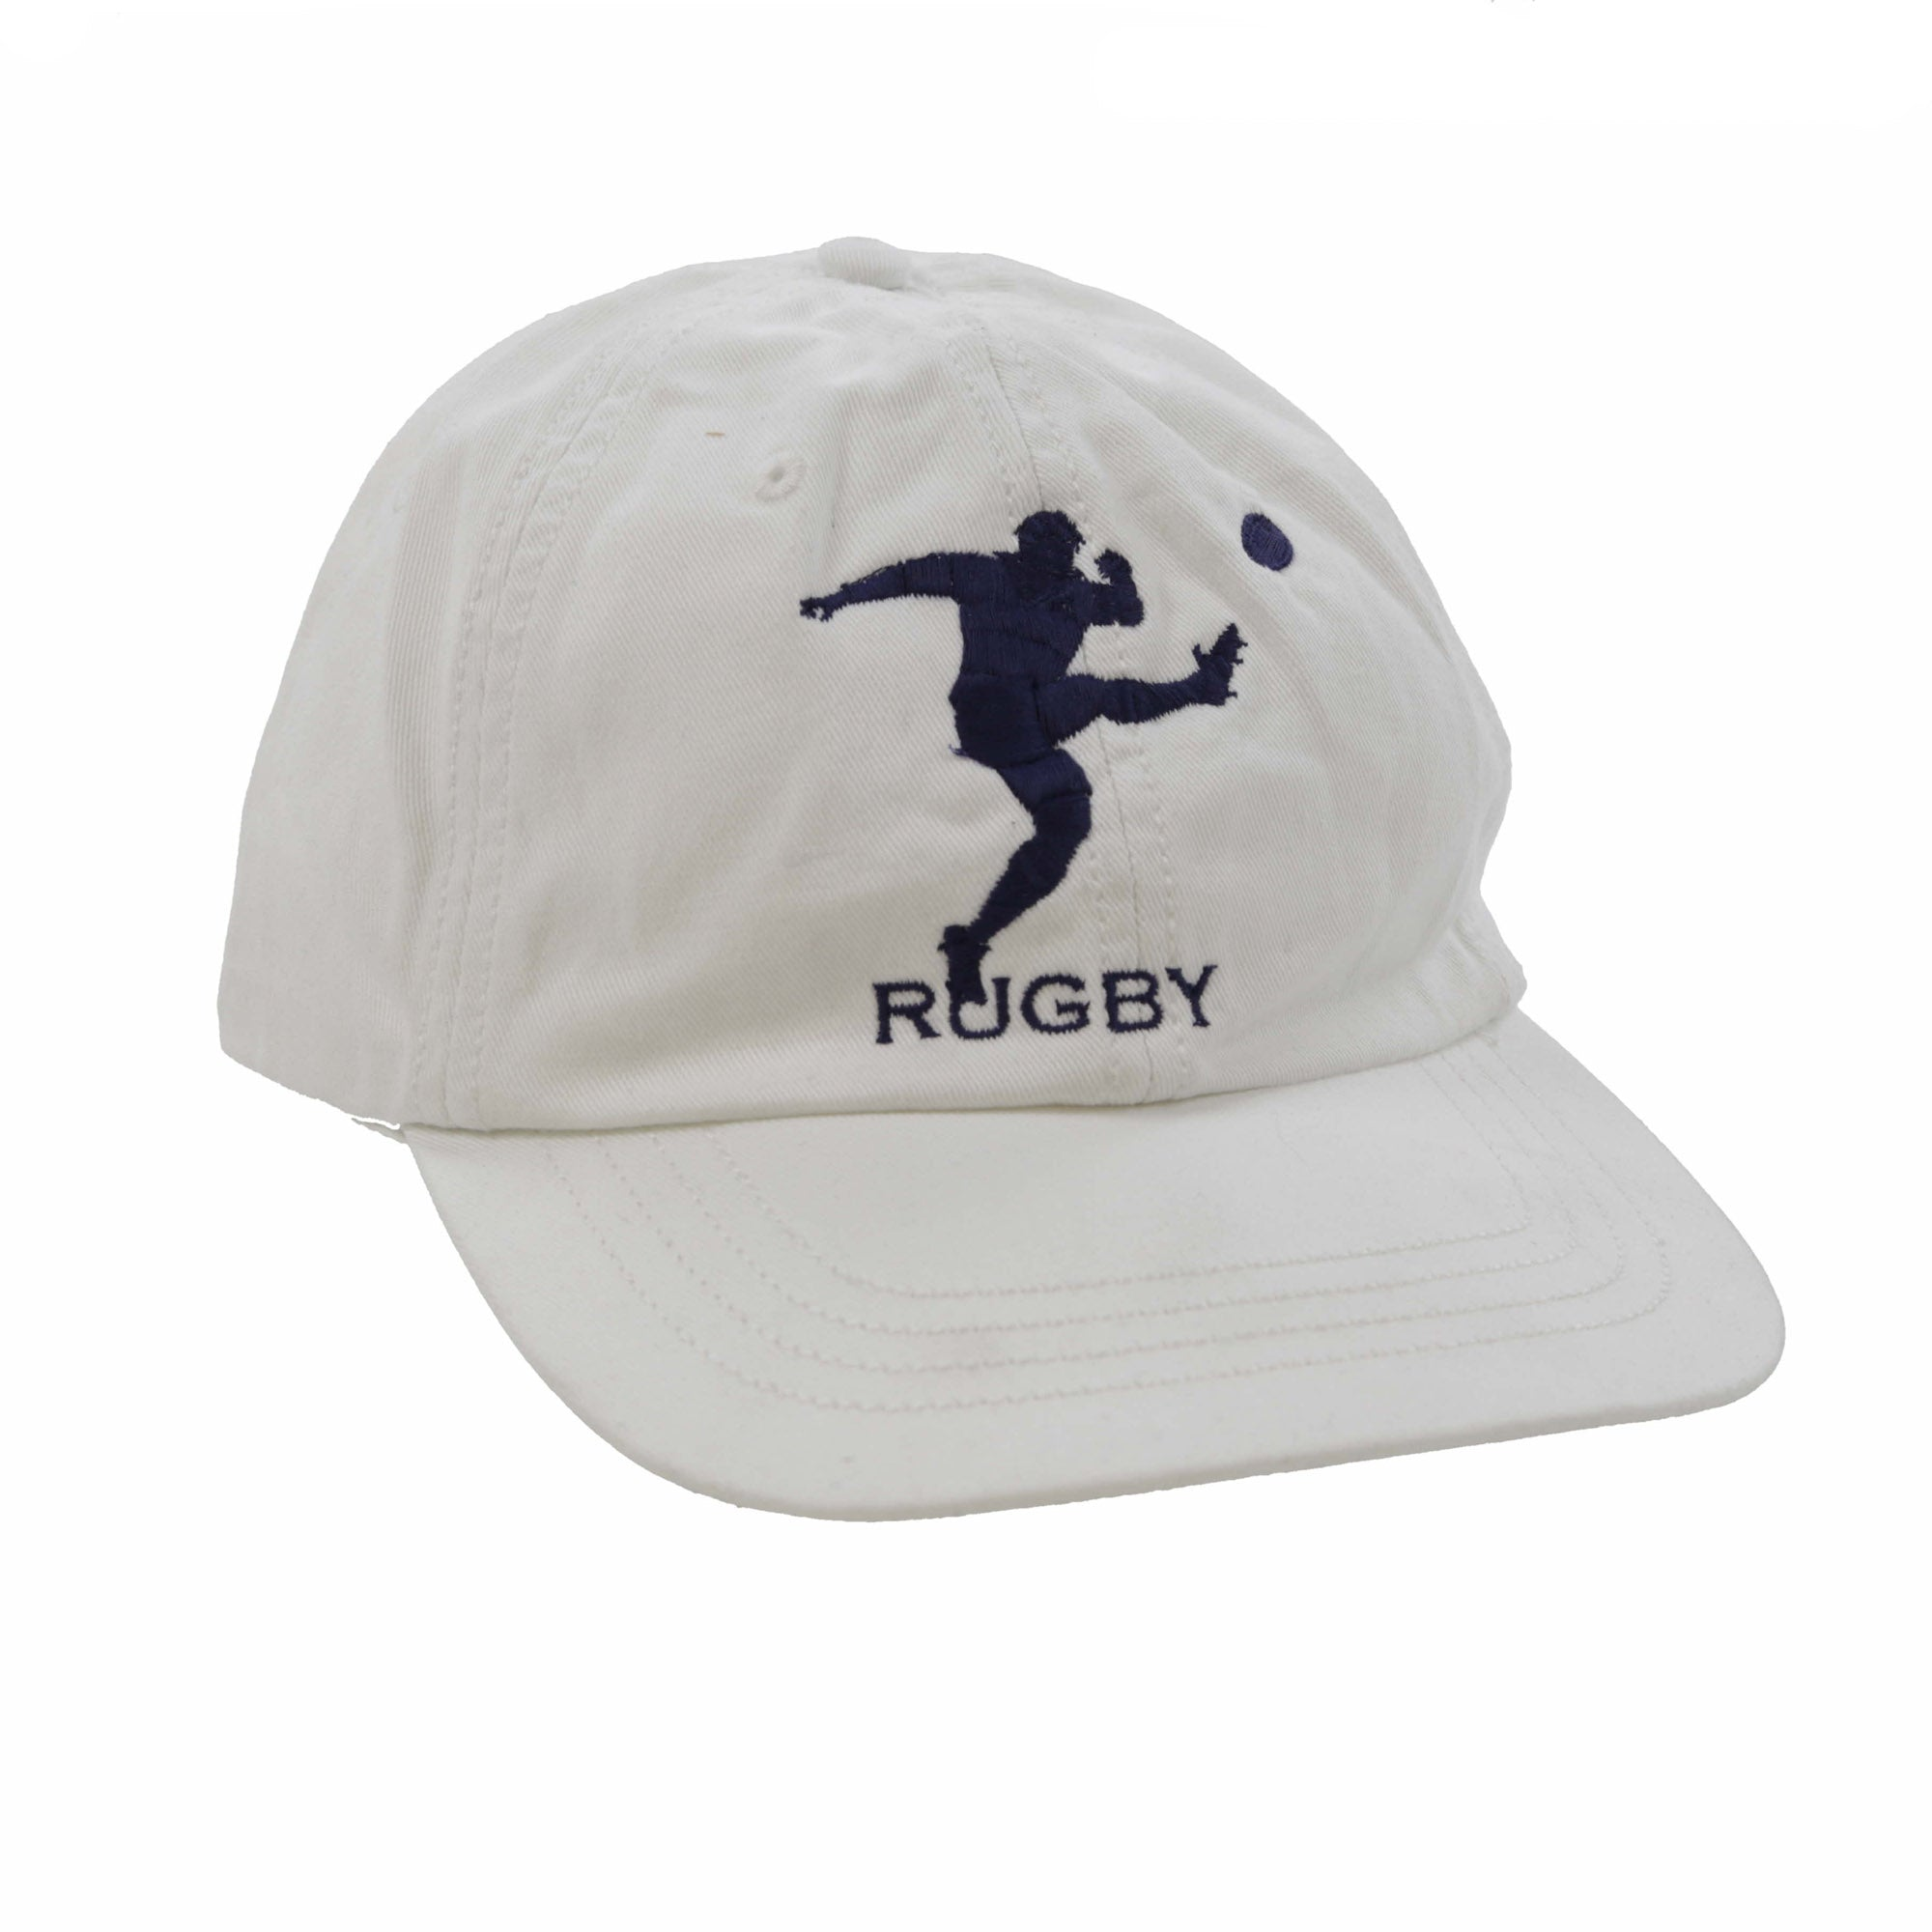 RUGBY MAN CAP // WHITE NAVY